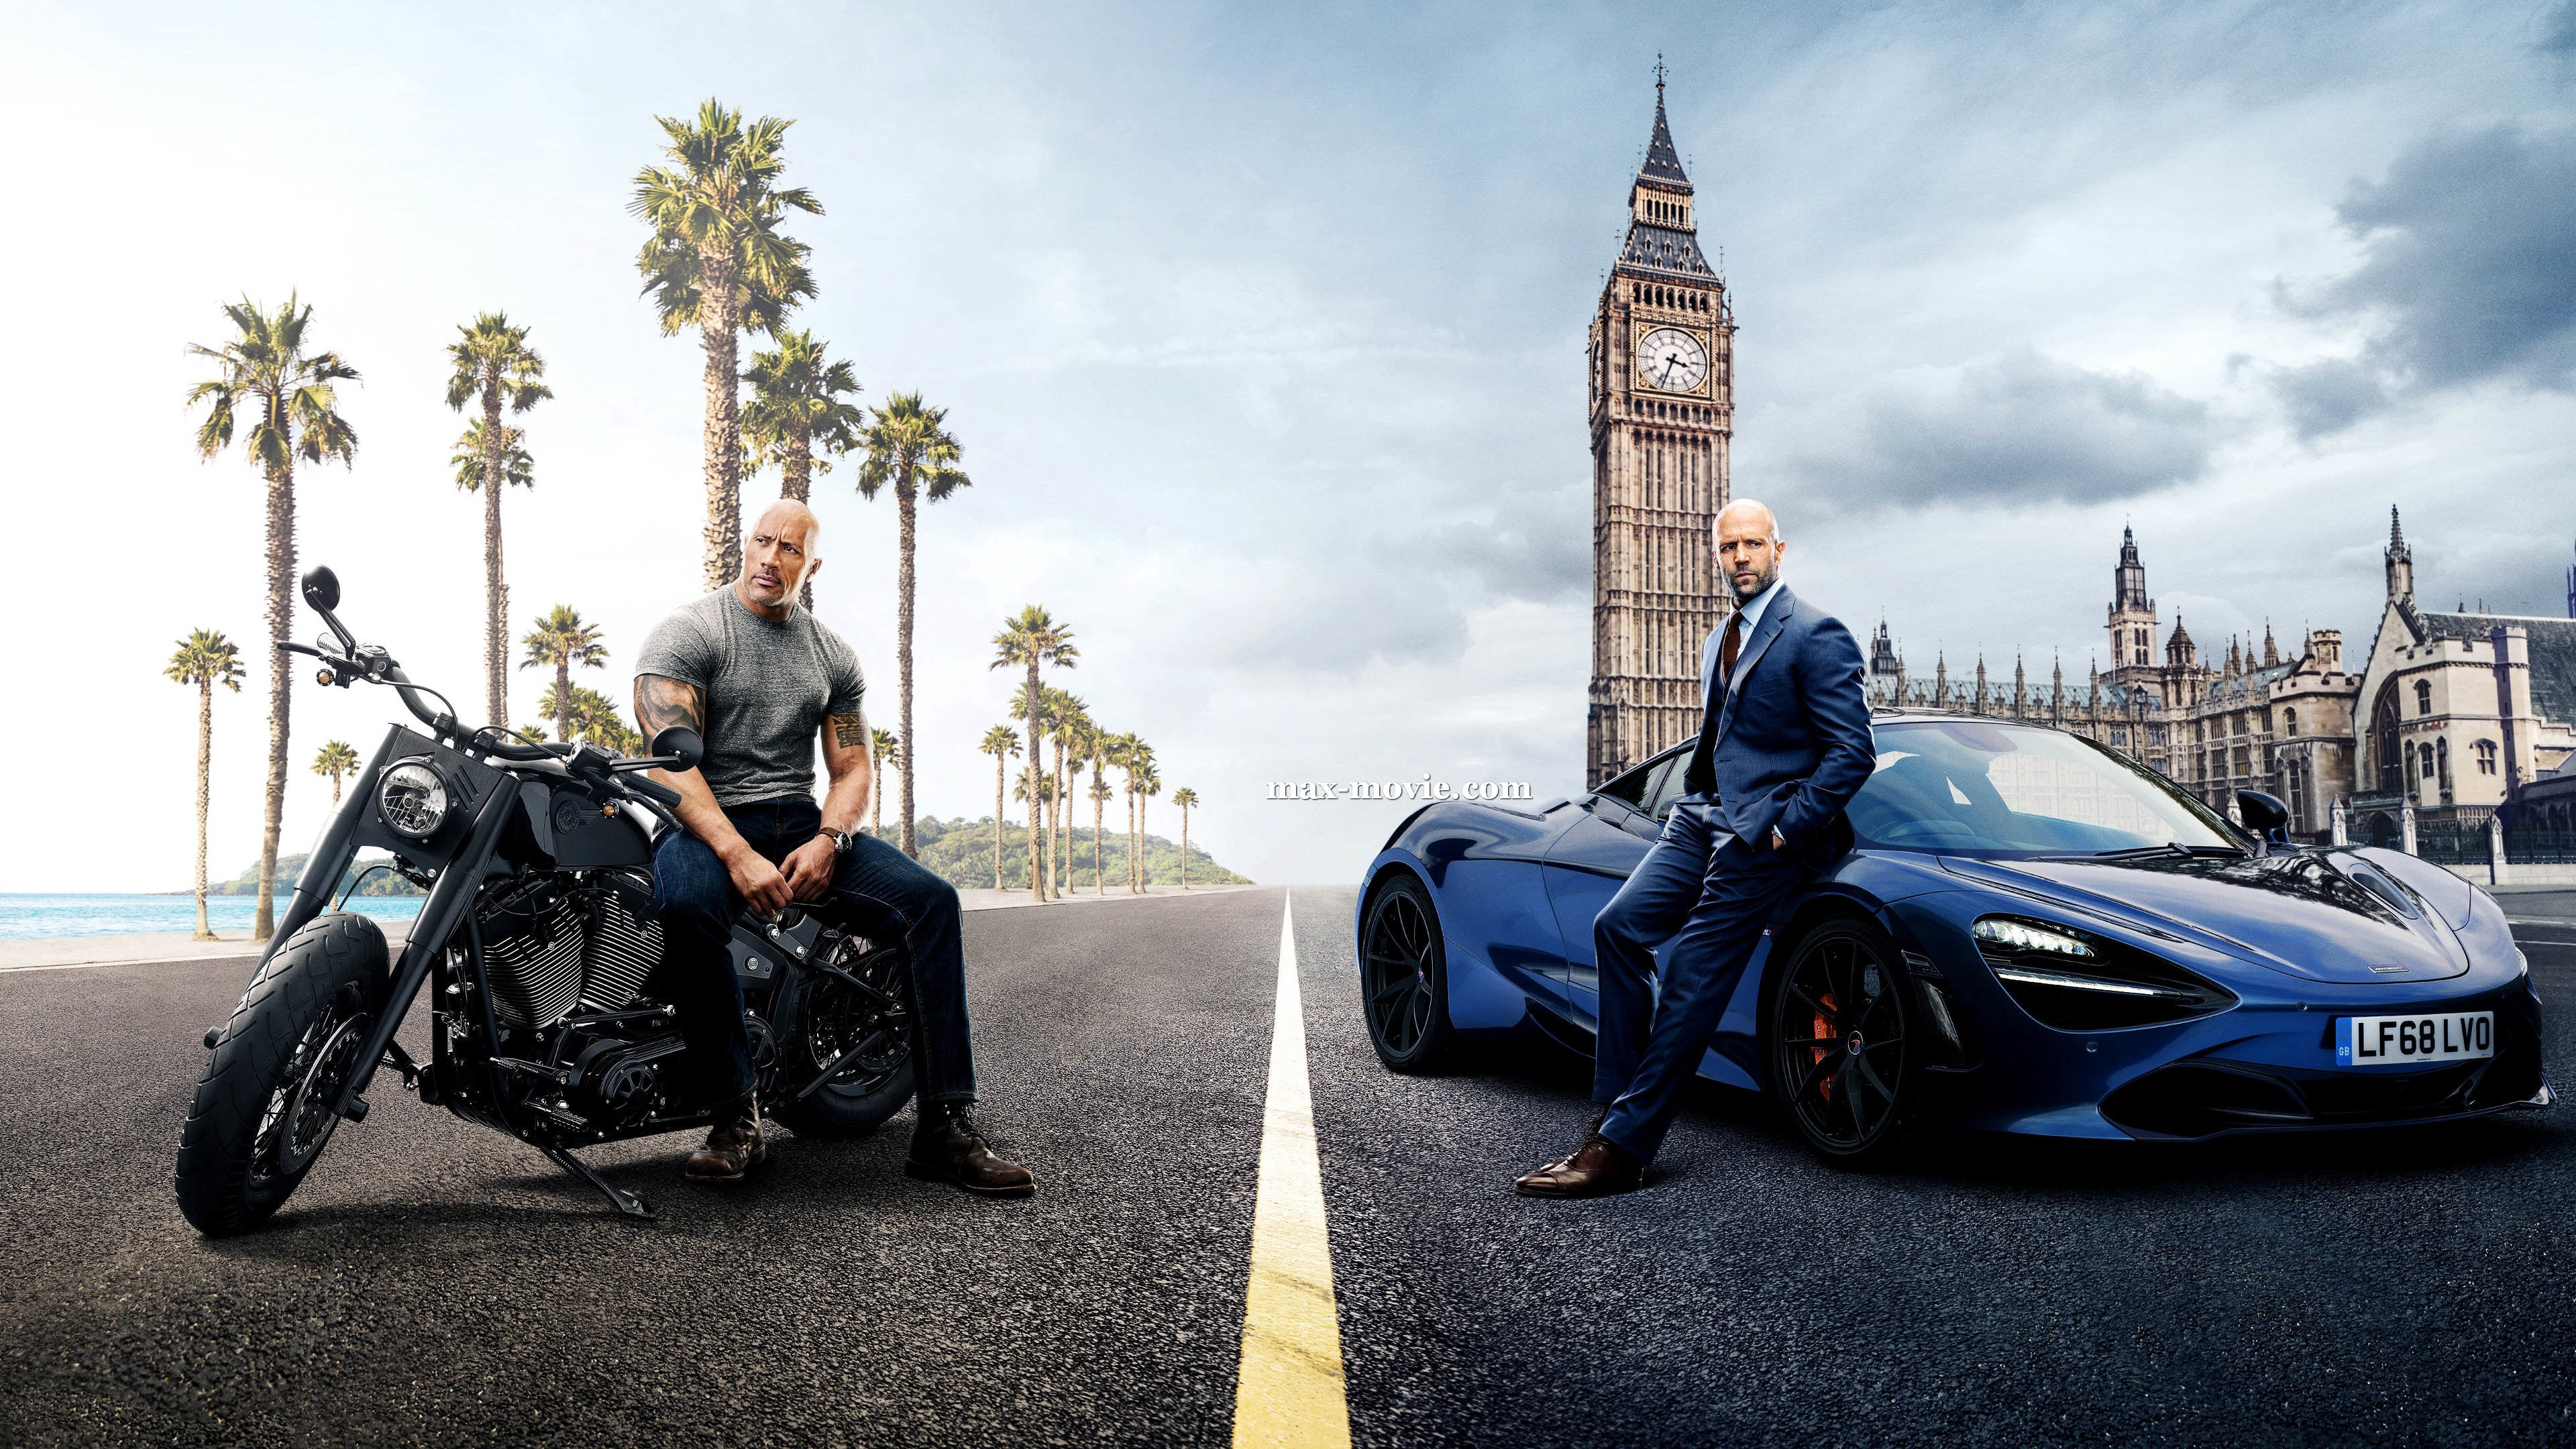 Download Pelis Fast Furious Hobbs Shaw 2019 Descargar En Español By Angela Reitz Medium